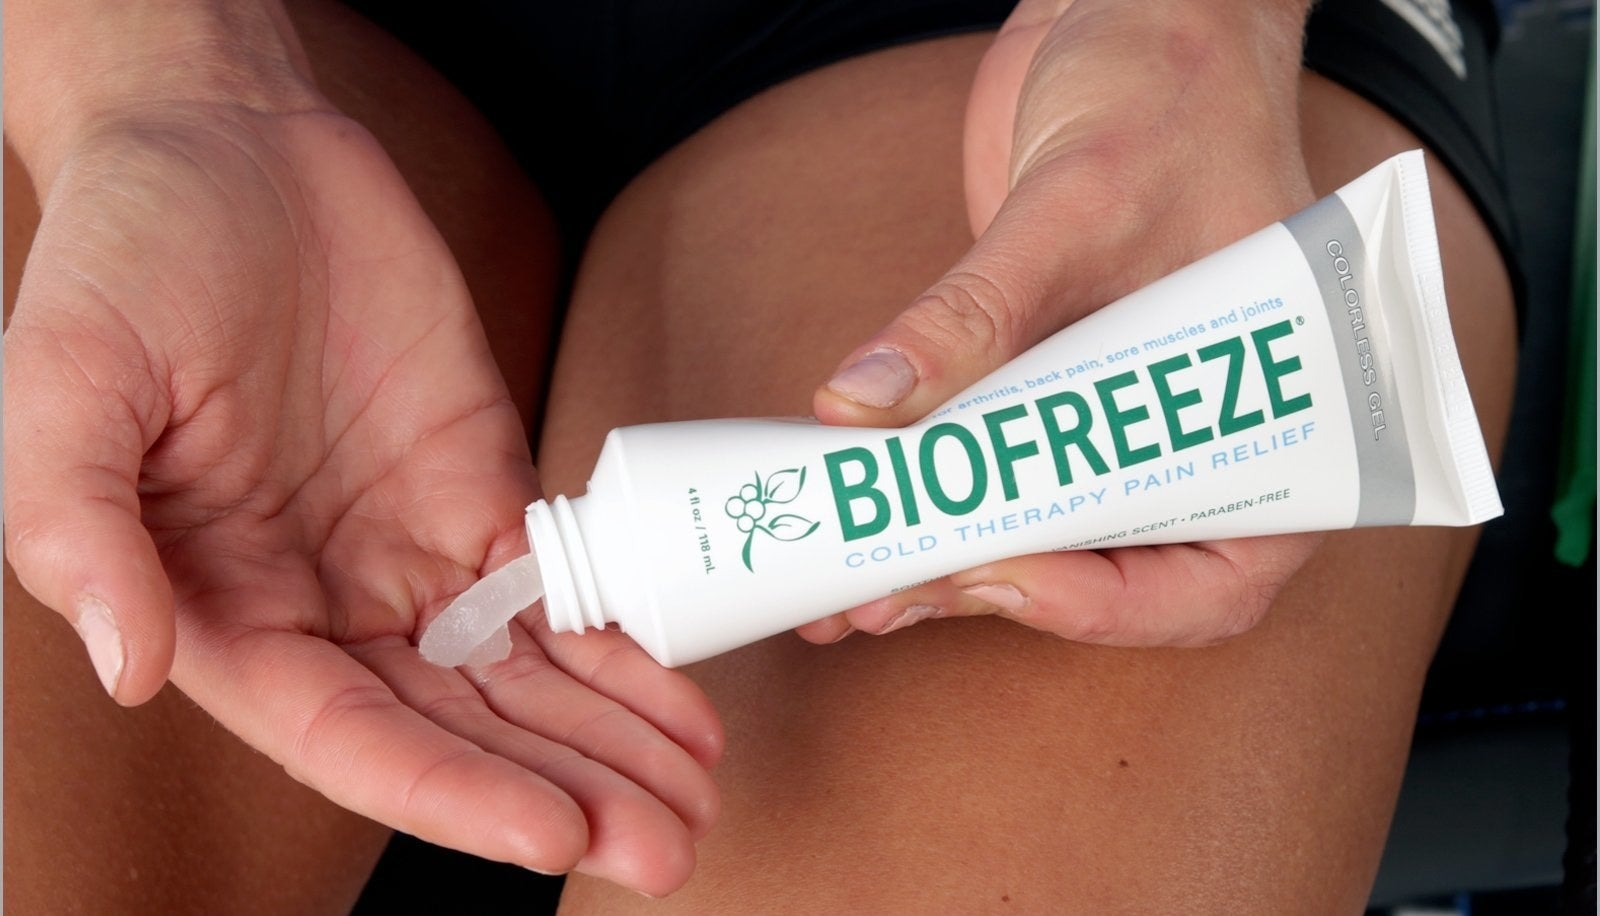 "Promising review: ""Biofreeze is a great product for aches and pains. My massage therapist recommended it years ago and I've been a dedicated customer ever since. Anytime I'm tense or have a knot in my neck or back I use it. It really helps to relax the area and allows me to work out the problem areas. My husband uses it for chronic back pain to cool the area and help him stretch out his back better."" —Sara FGet it from Amazon for $9.54."